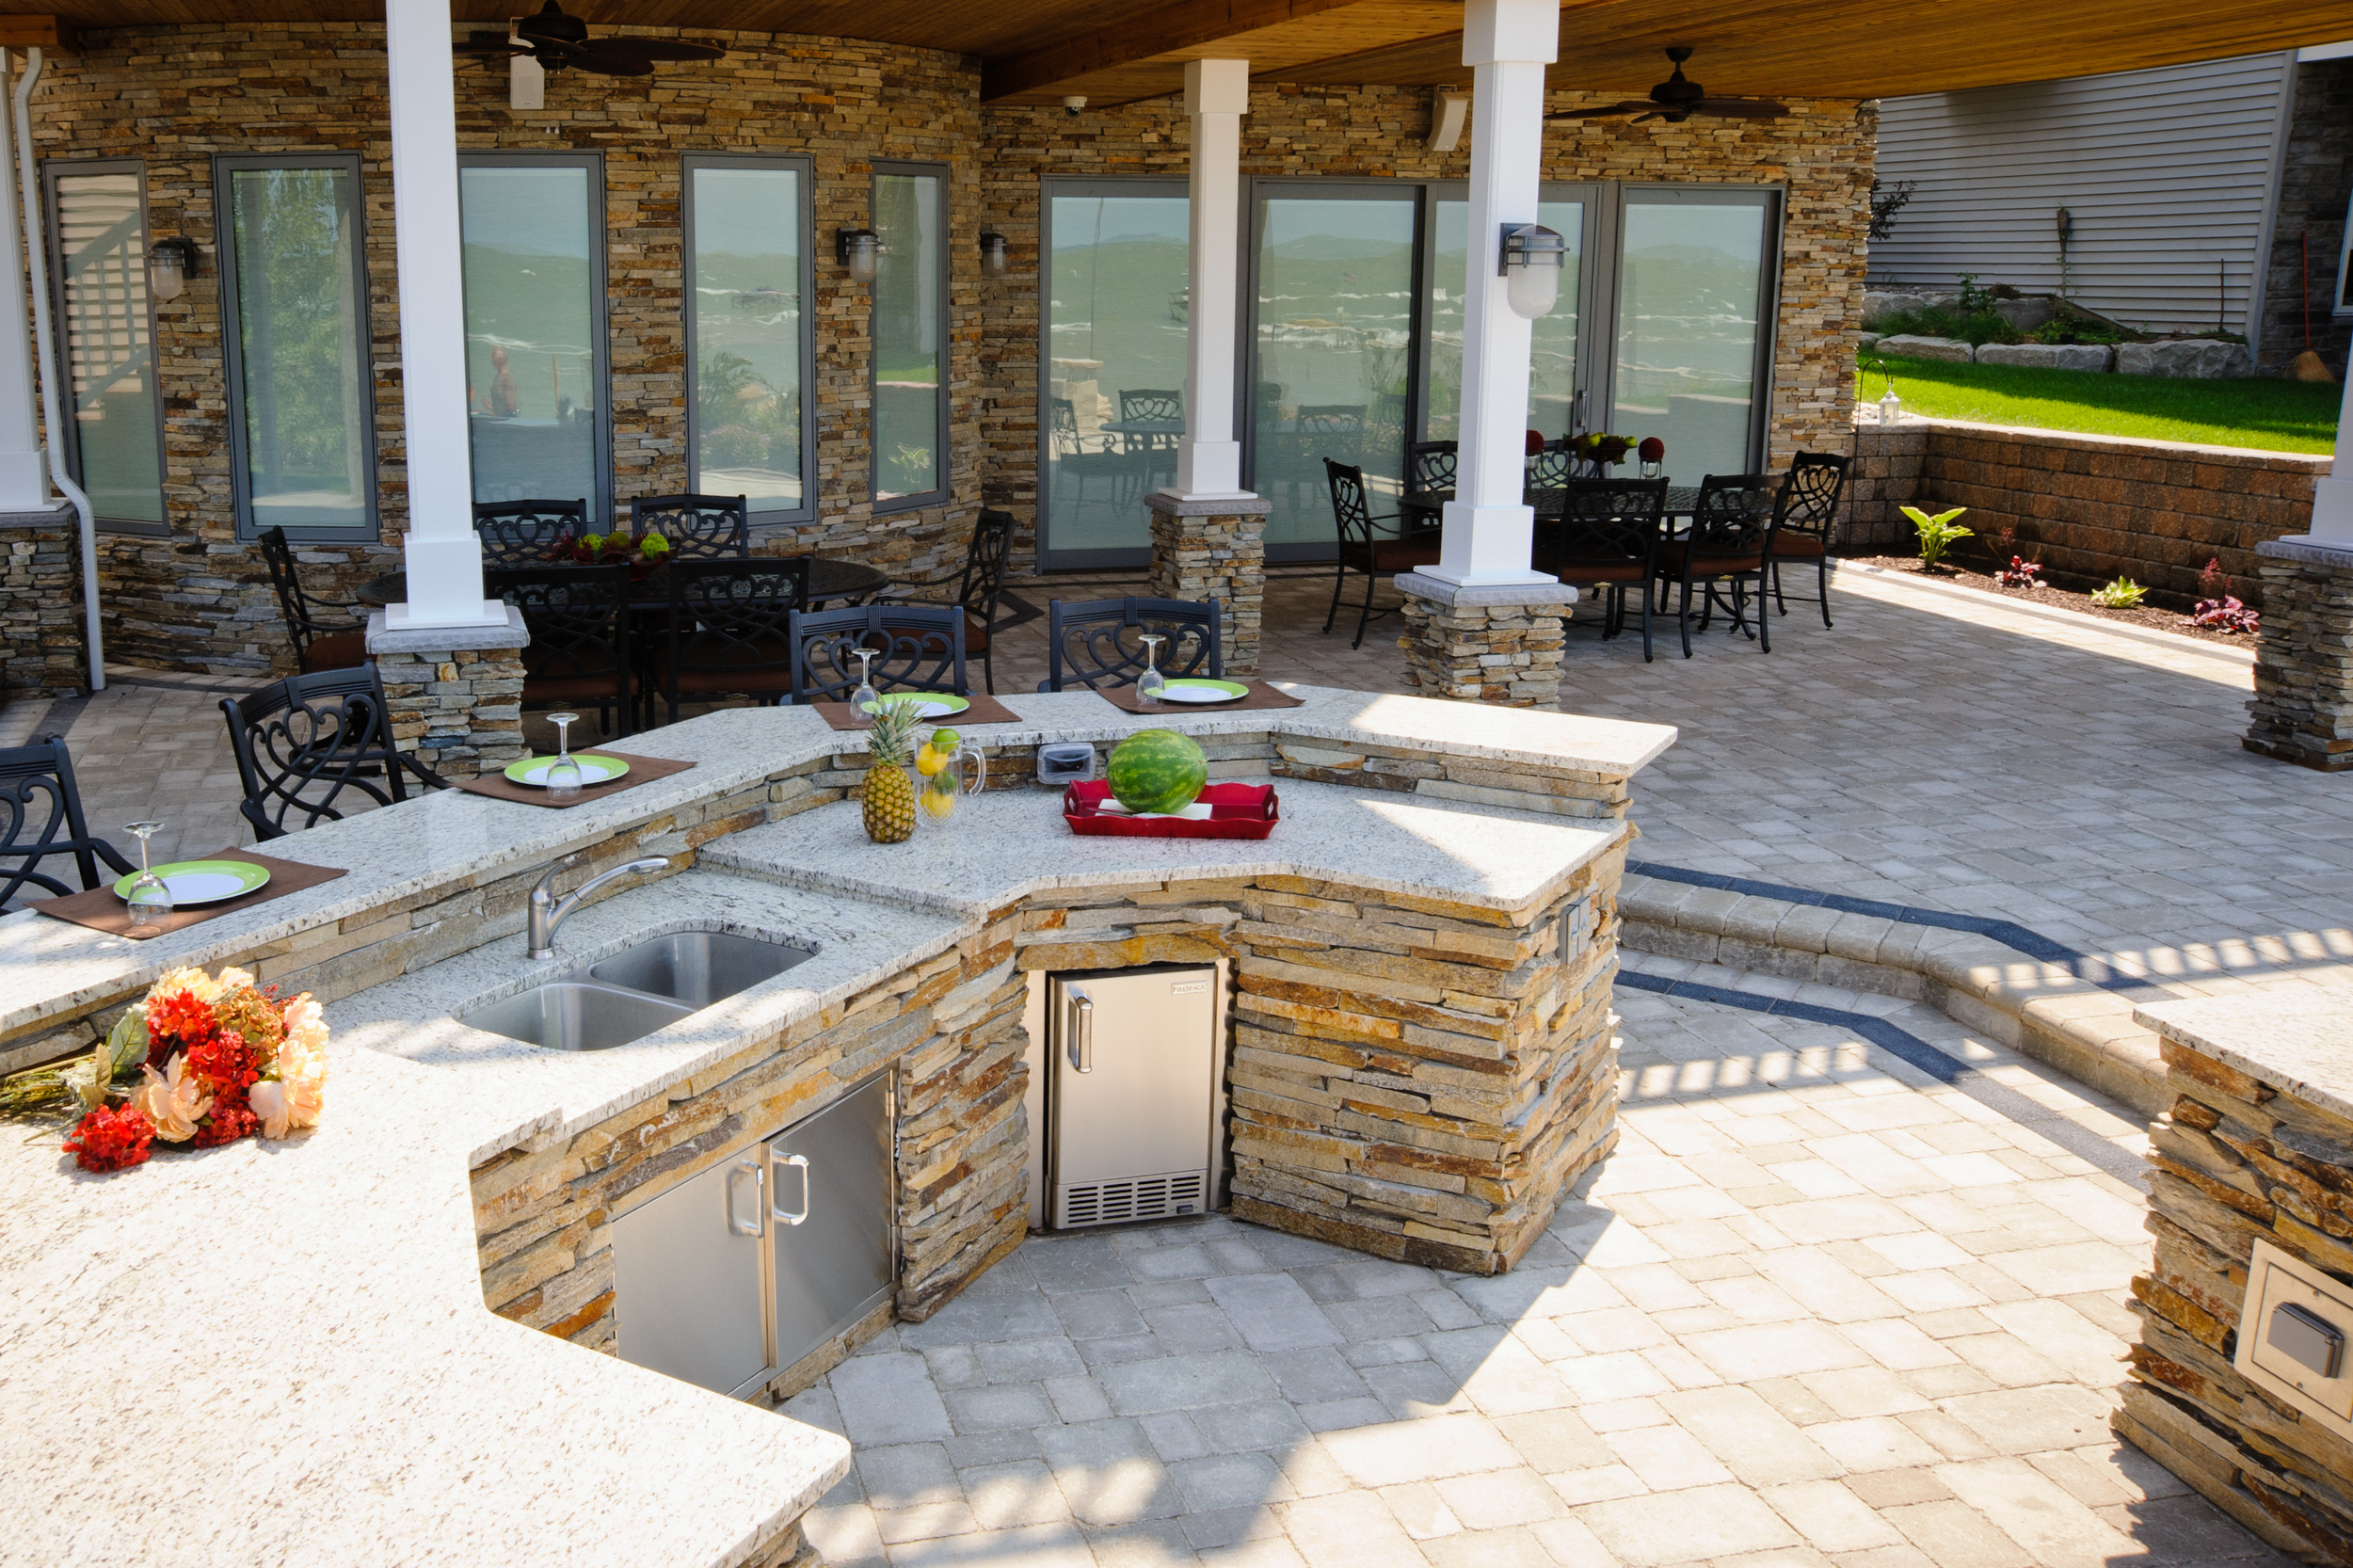 Complete Outdoor Kitchen with Bar for Entertaining